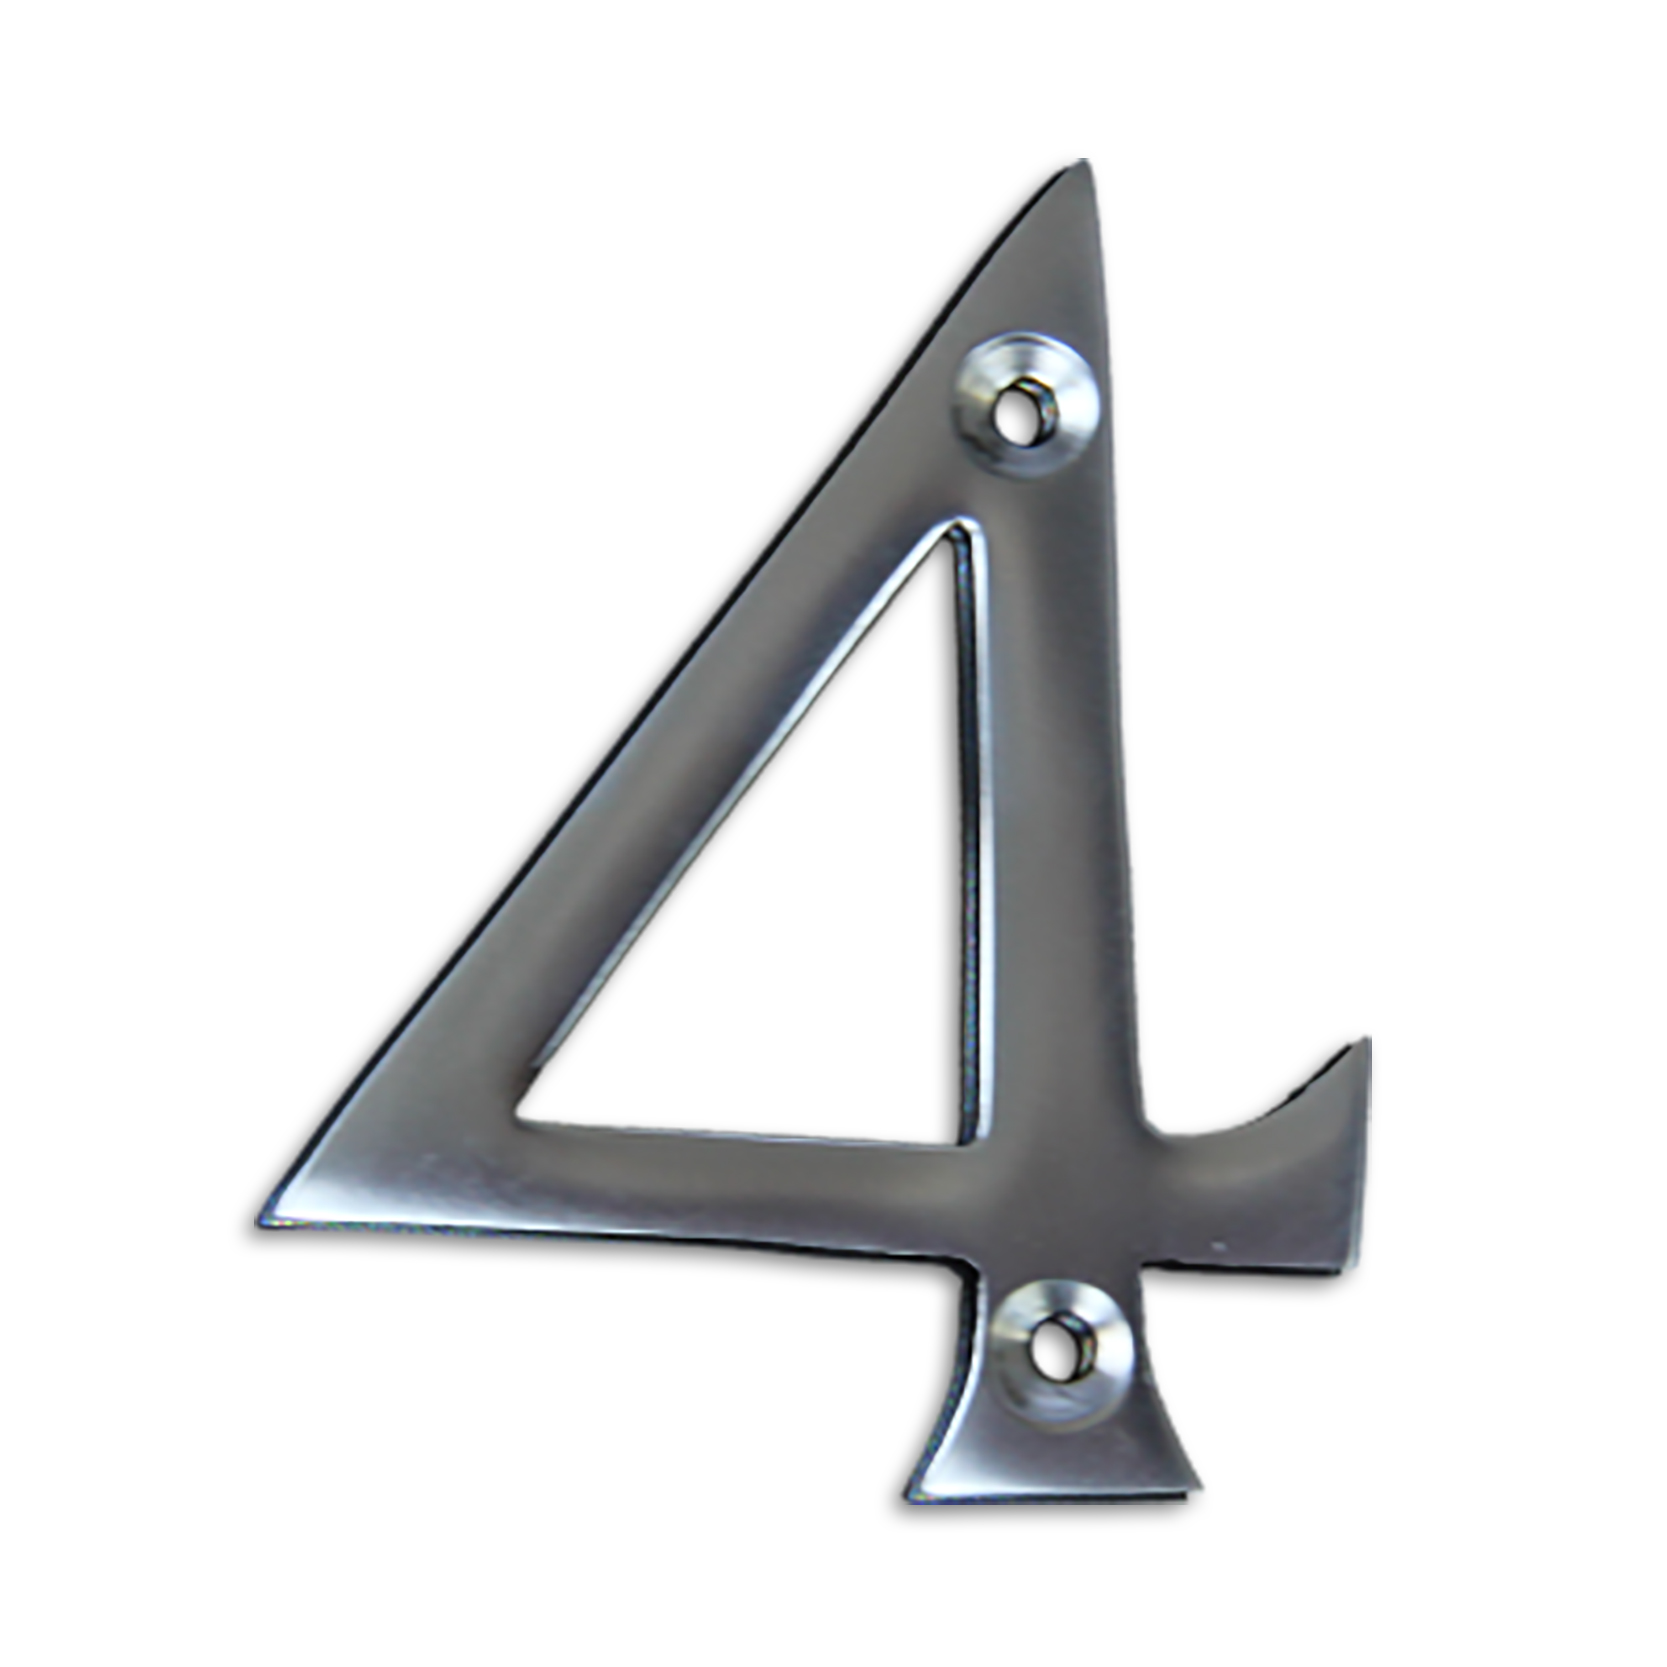 3-inch brass metal house number in satin chrome finish - metal number 4